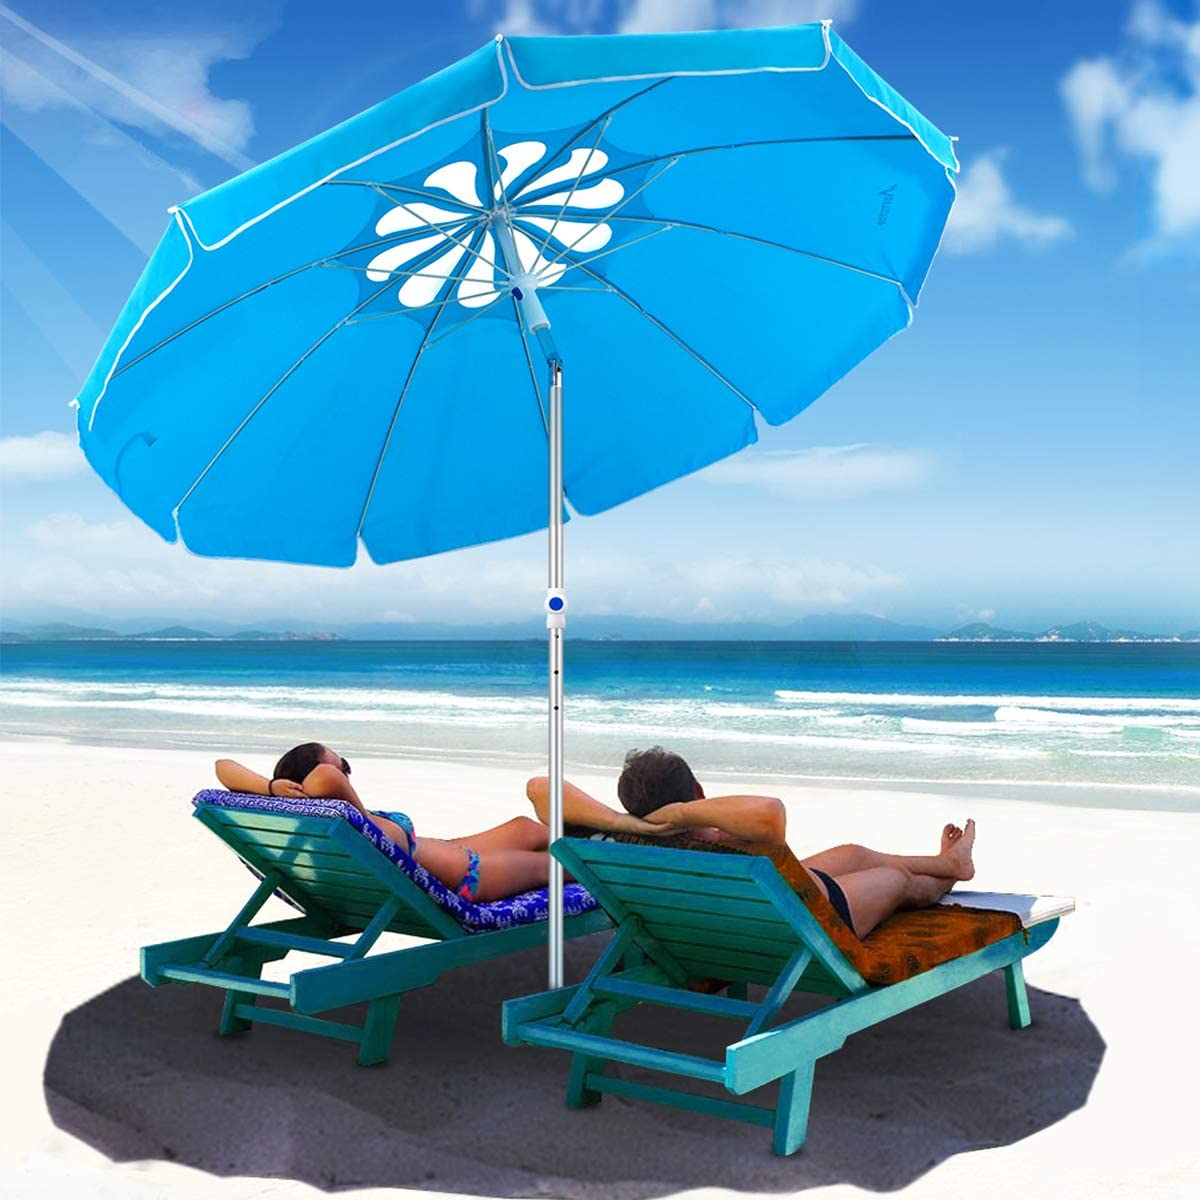 MOVTOTOP 6.5ft Beach Umbrella with Tilt Aluminum Pole and UPF 100 , Flower Vents Design and Portable Sun Shelter for Sand and Outdoor Activities